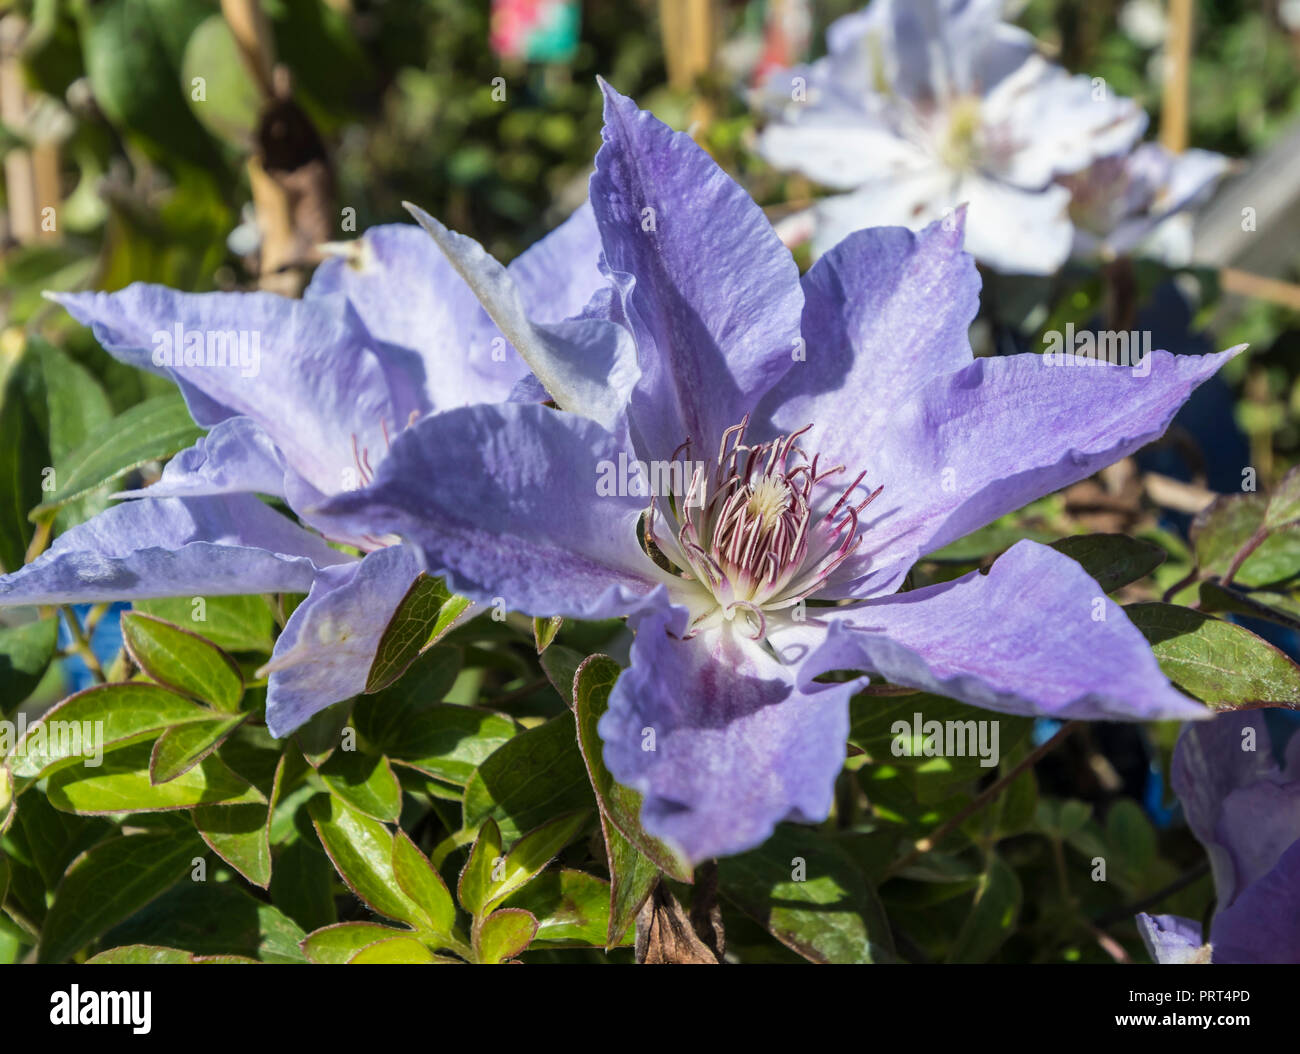 Clematis Tranquilite 'Evipo111', a pale mauve clematus flower from the Boulevard collection in Summer in West Sussex, UK. - Stock Image